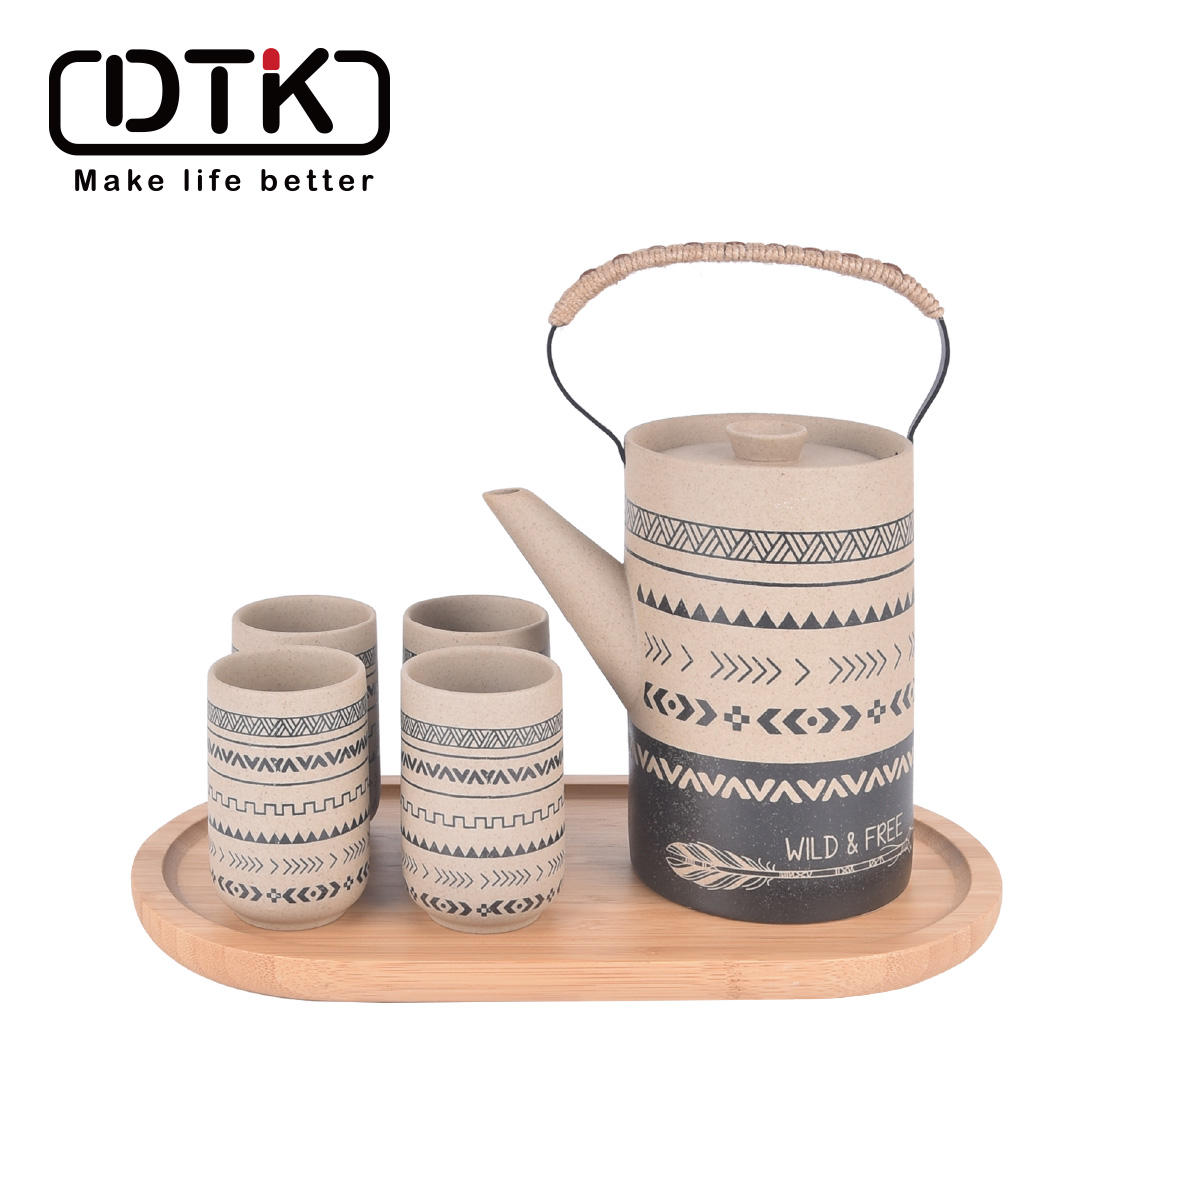 DTK Newly Designed Series Indian Series Product Kitchenware Clay Bamboo Tea Pot set